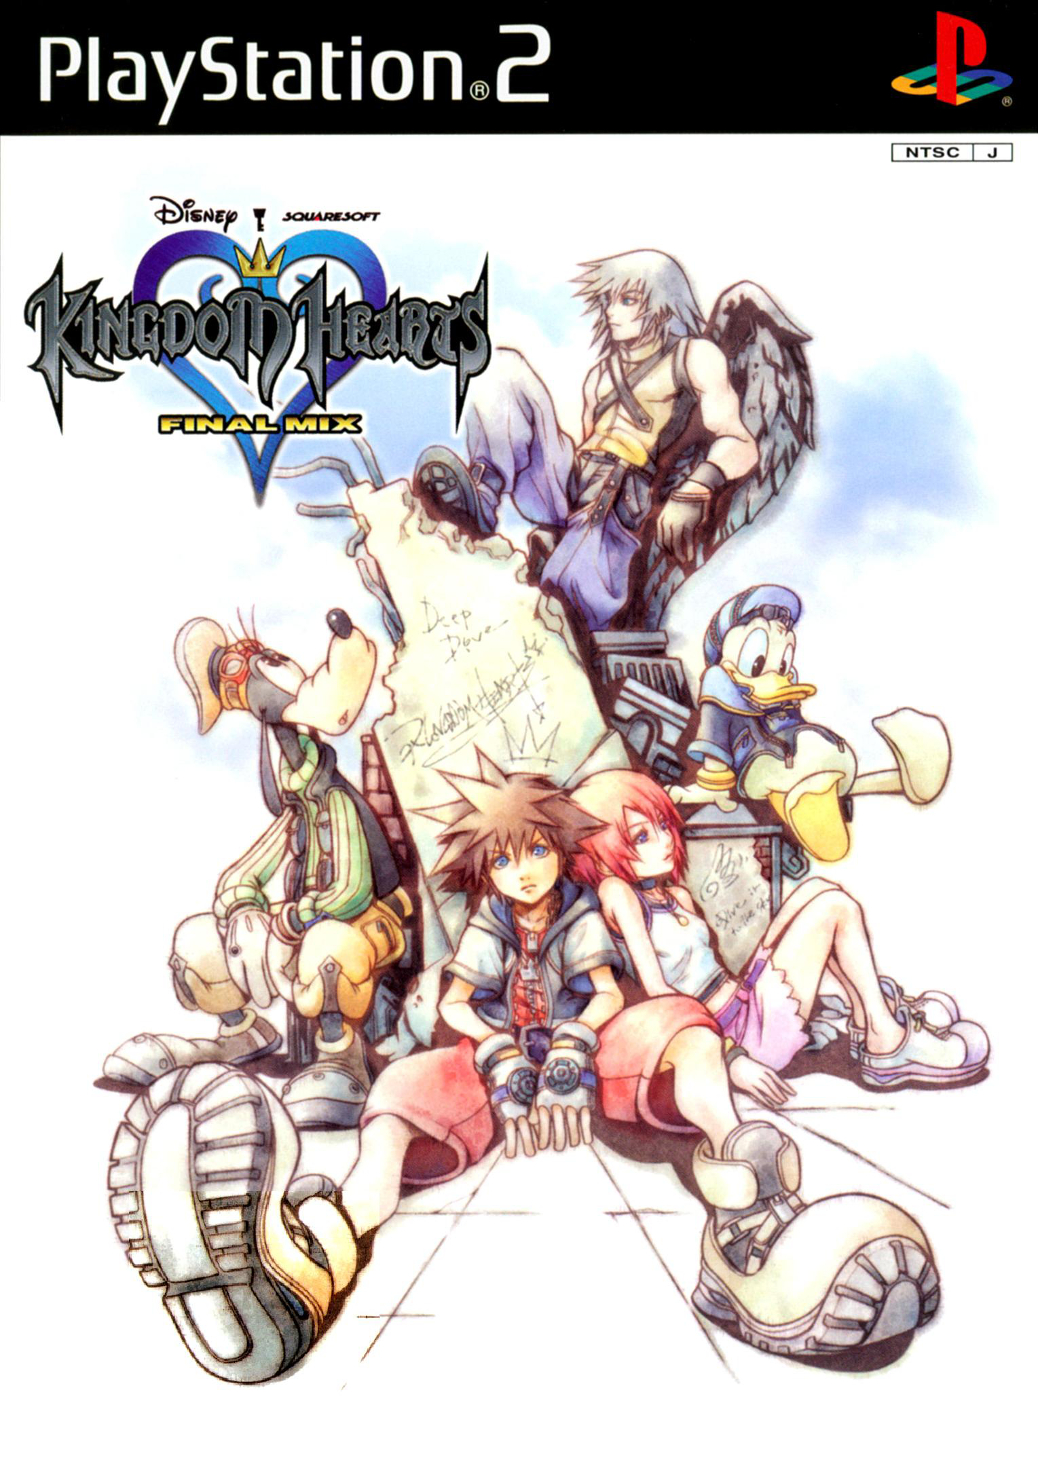 Kingdom Hearts Final Mix - PlayStation 2 - Japanese Box Art